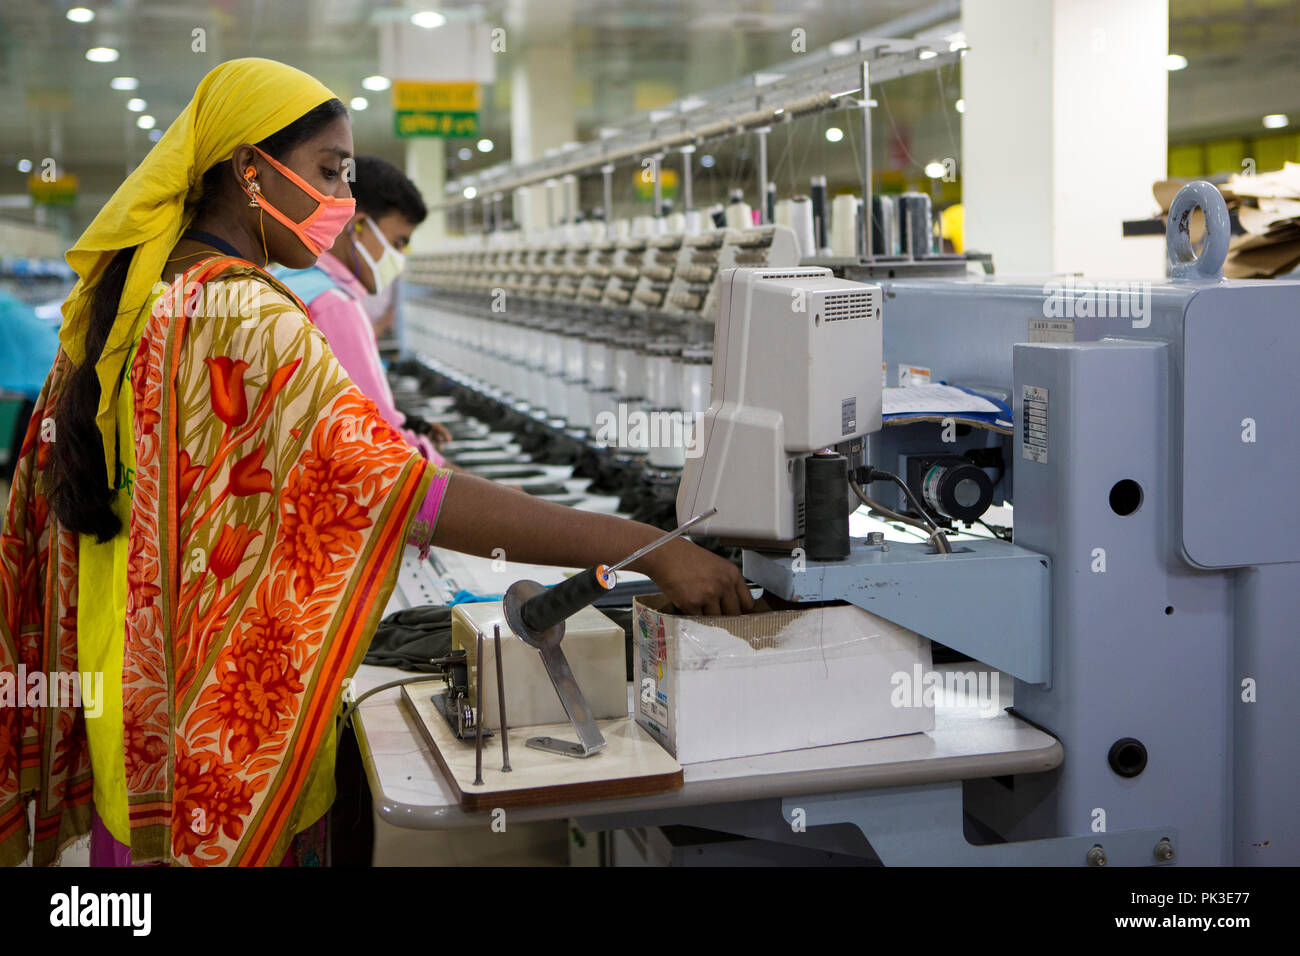 Garment workers at work on machines inside a garment factory